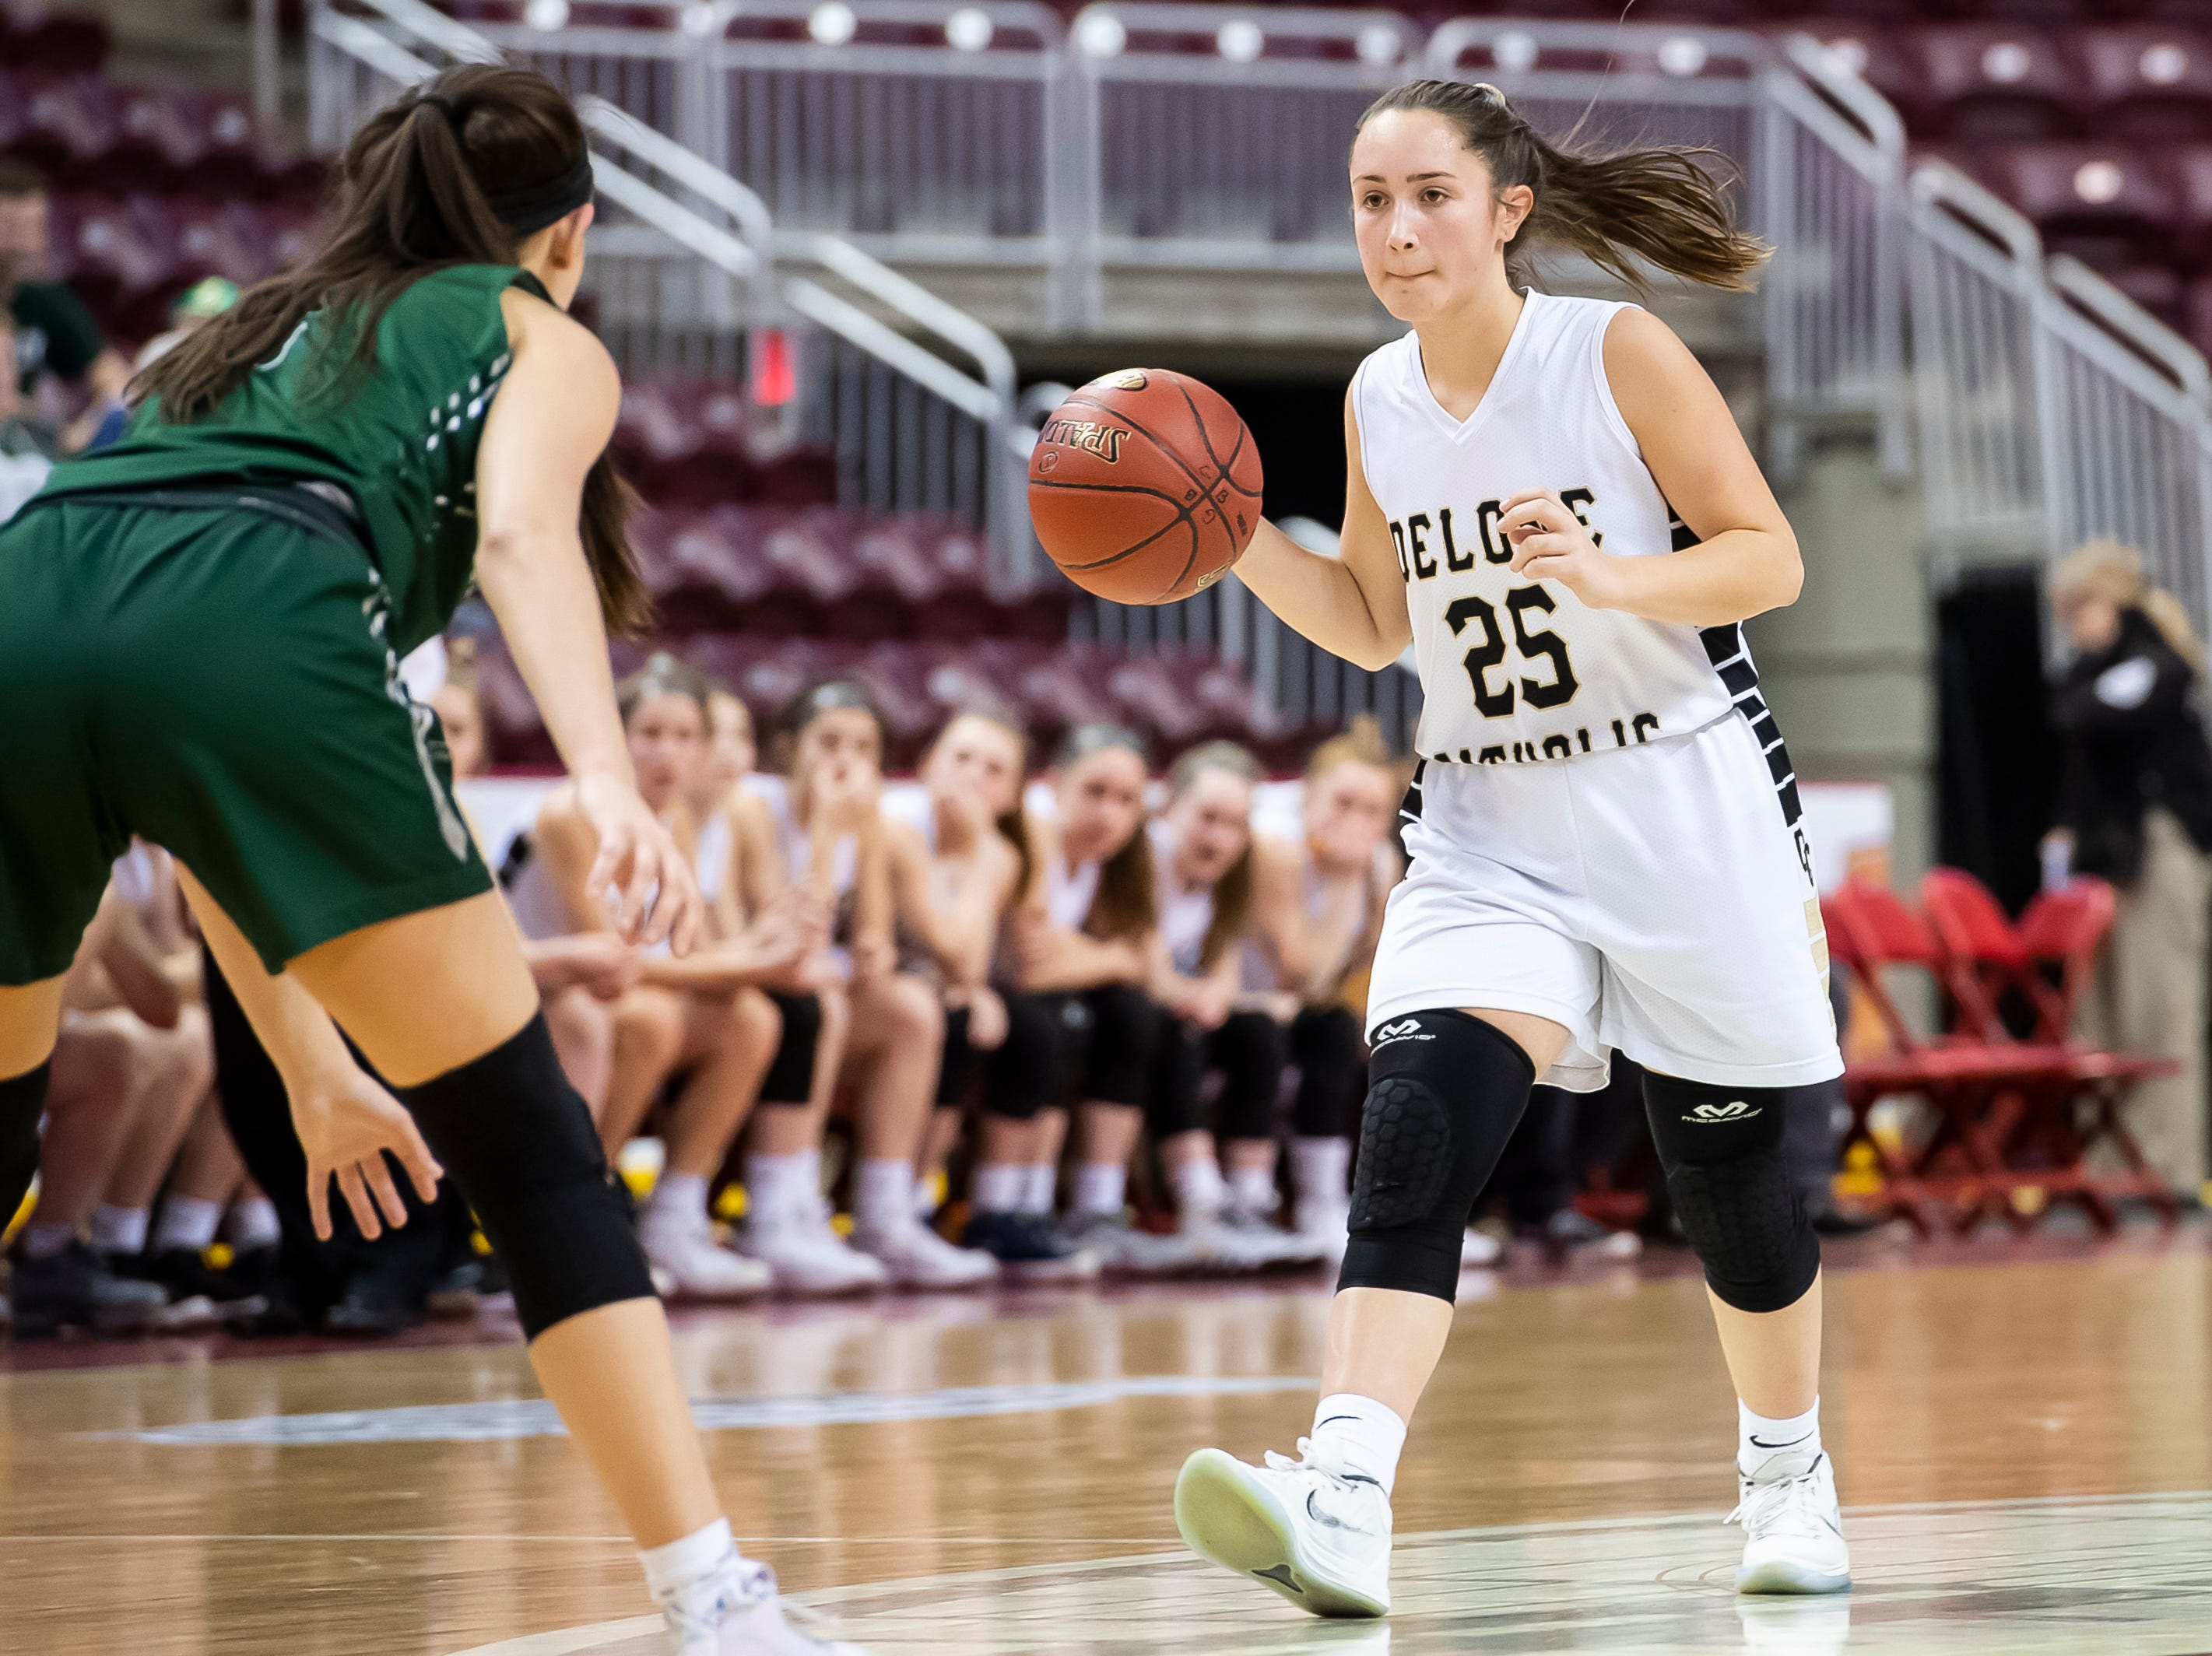 Delone Catholic's Camryn Felix moves down the court during the District 3 3A girls championship game against Trinity at the Giant Center in Hershey Wednesday, Feb. 27, 2019. The Squirettes fell 44-33.